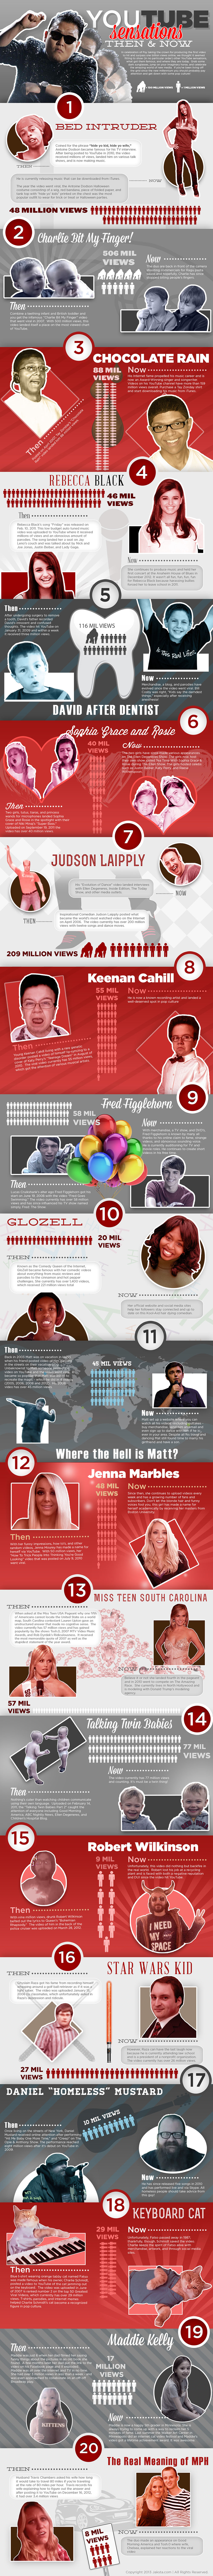 youtube-sensations-now-then-infographic